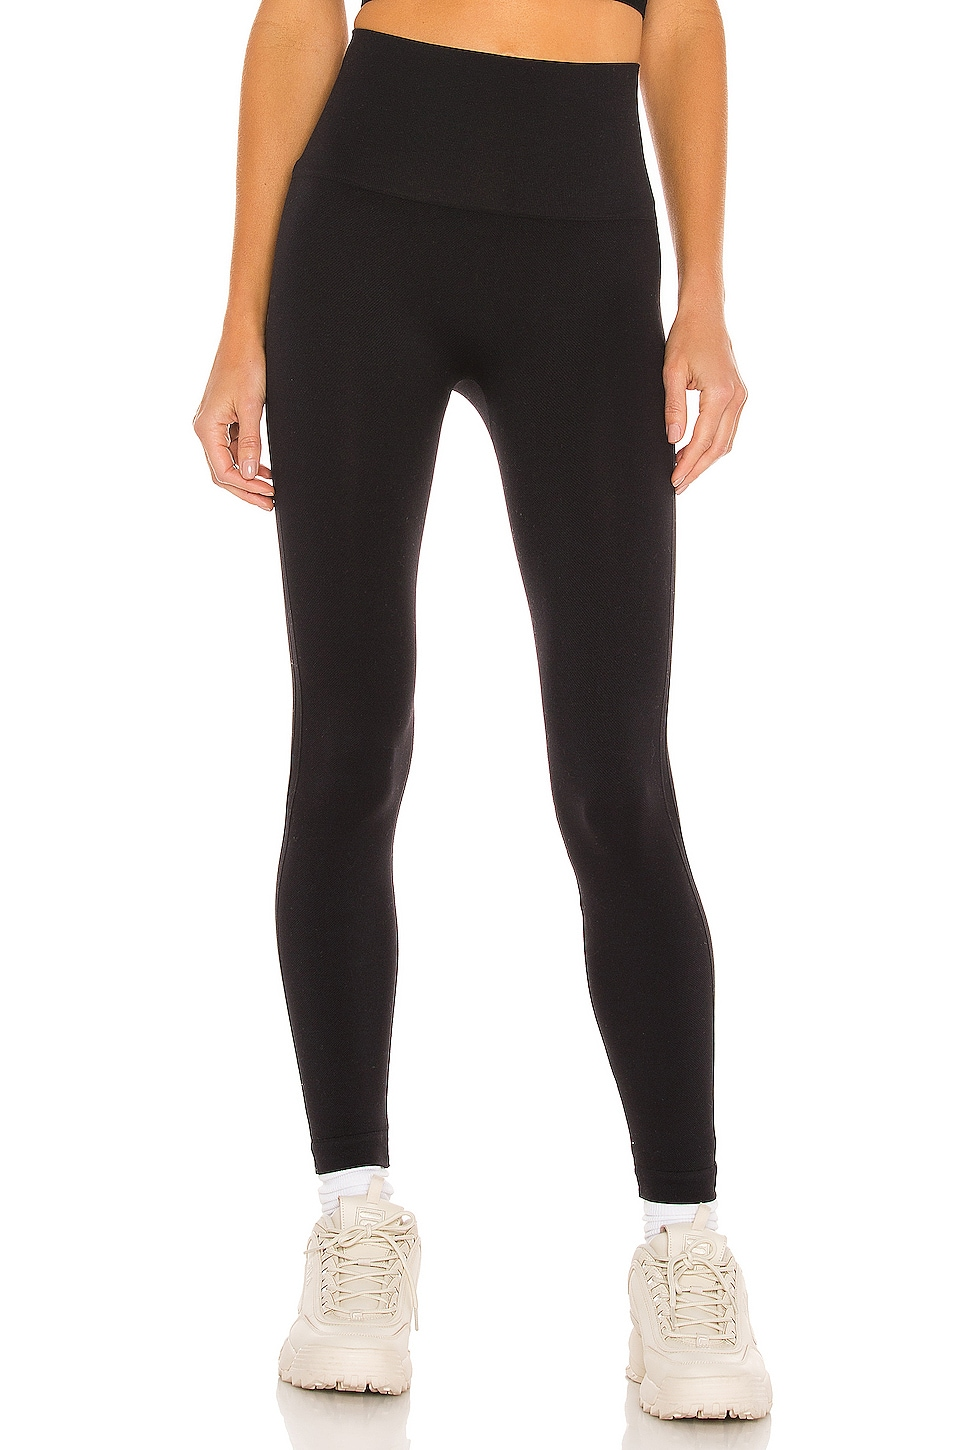 Look At Me Now Legging                   SPANX                                                                                                                             CA$ 88.93 6